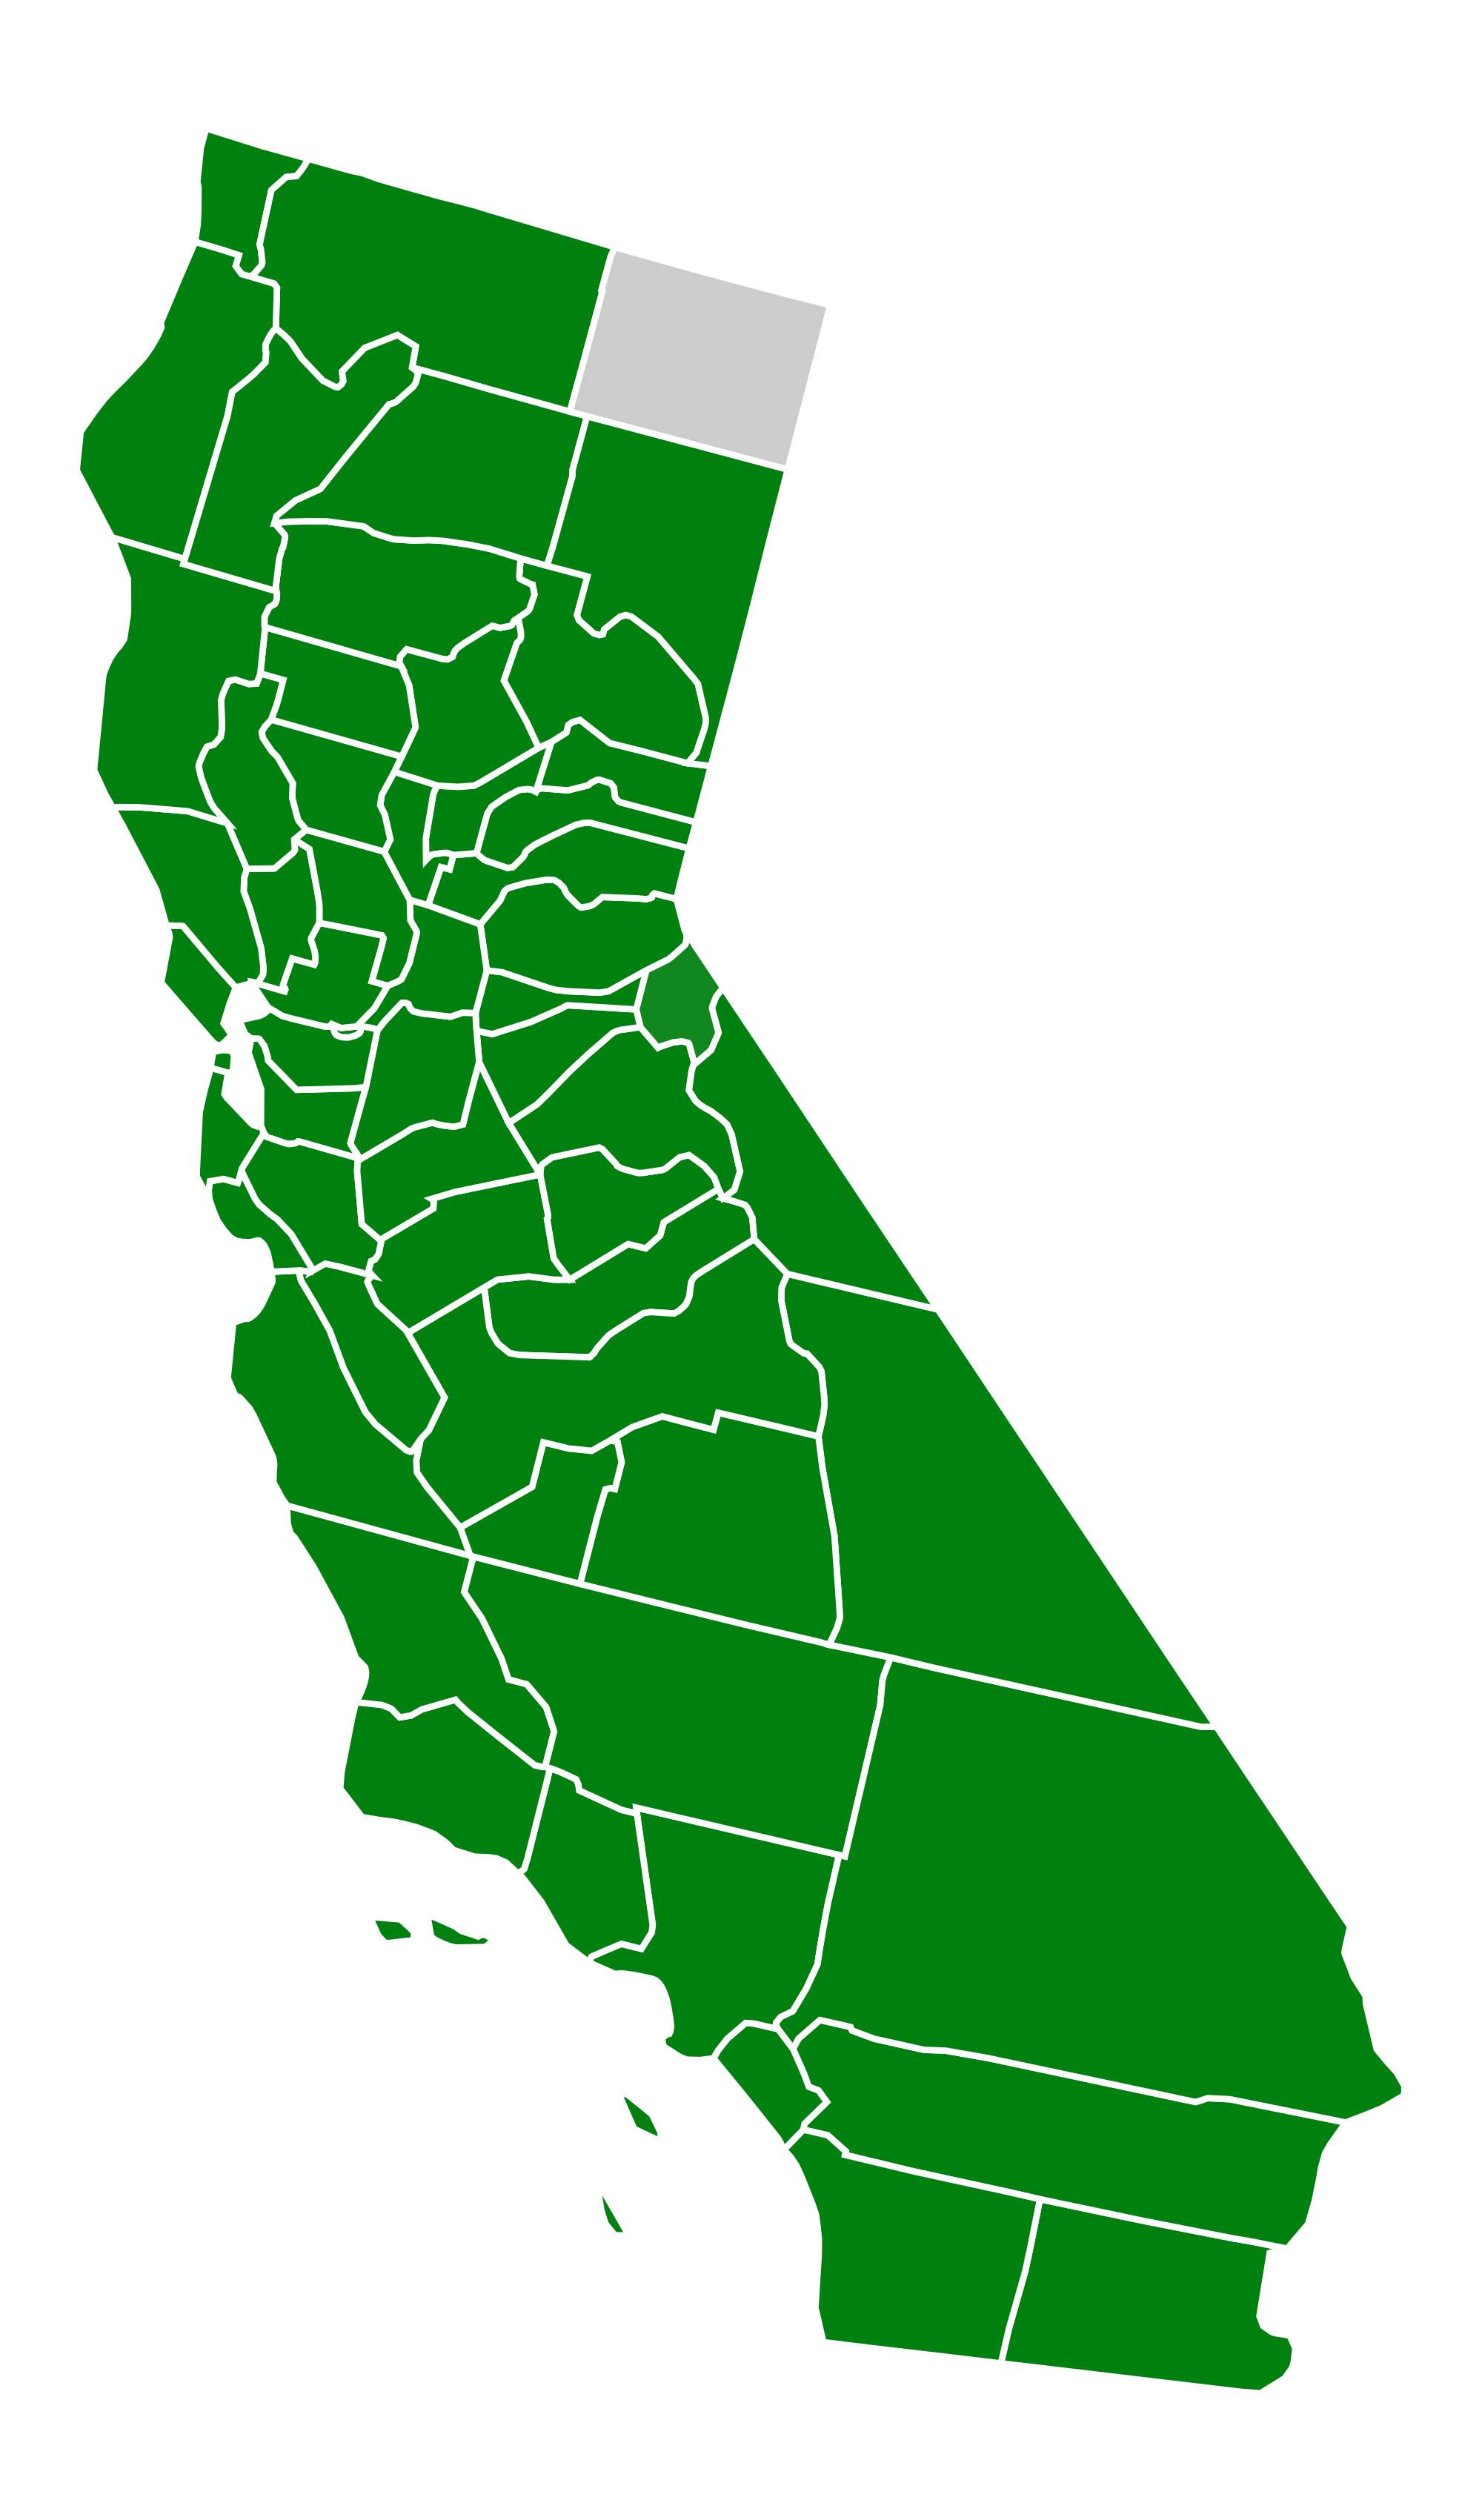 2000x3401 Filecalifornia Green Presidential Primary Election Results By